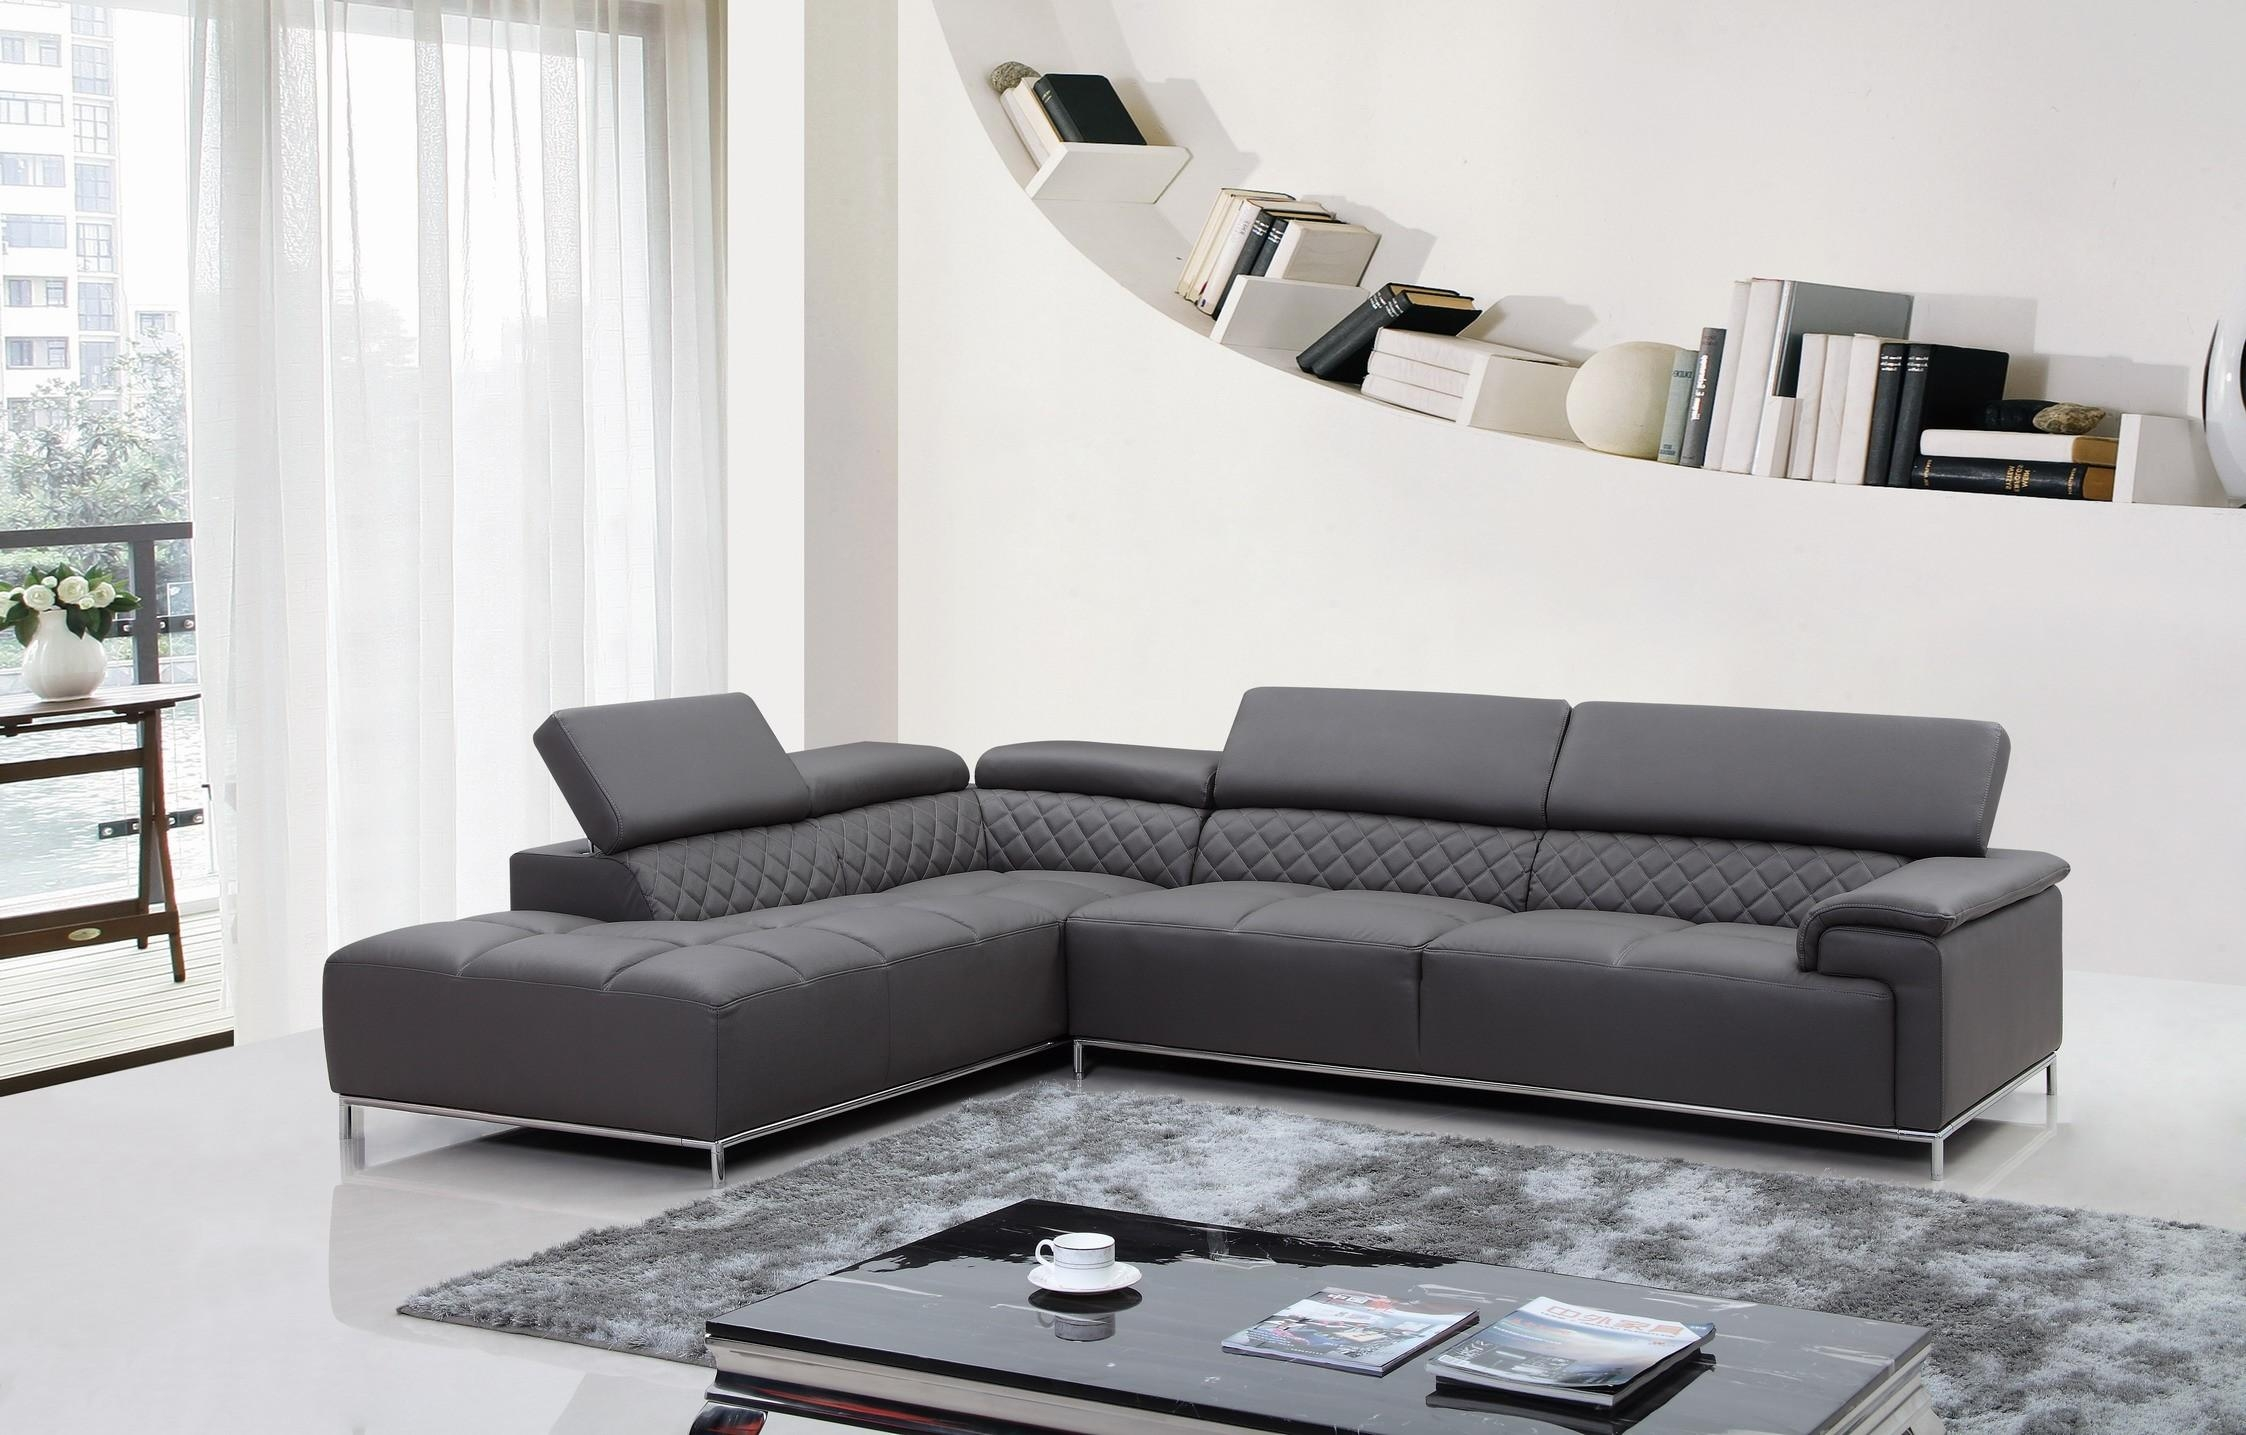 Furniture: Modern Leather Sectional Sofa And Black Leather Modern In Leather Modern Sectional Sofas (View 12 of 20)